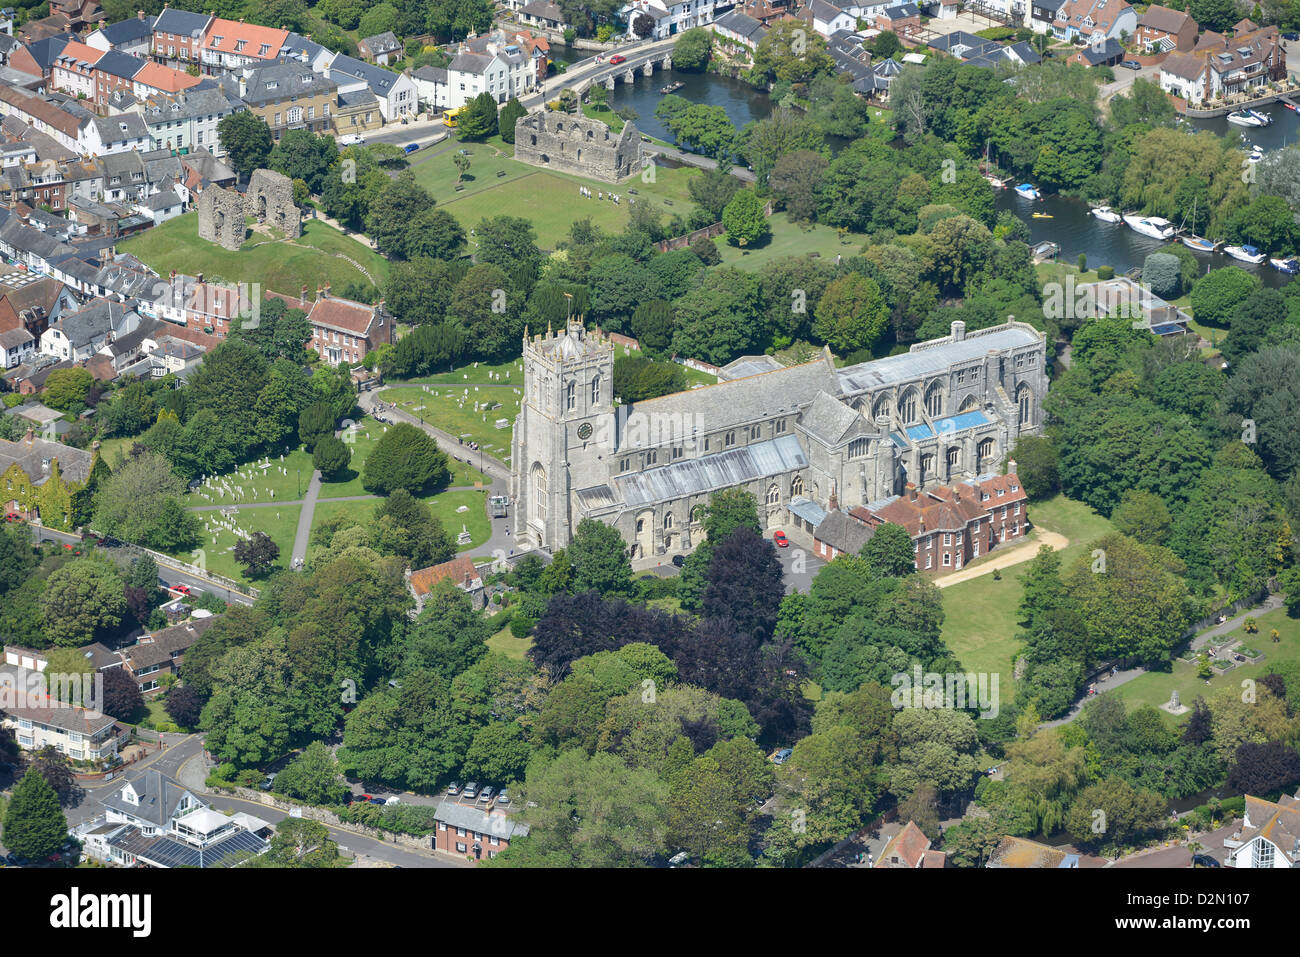 Aerial photograph of Christchurch Priory - Stock Image